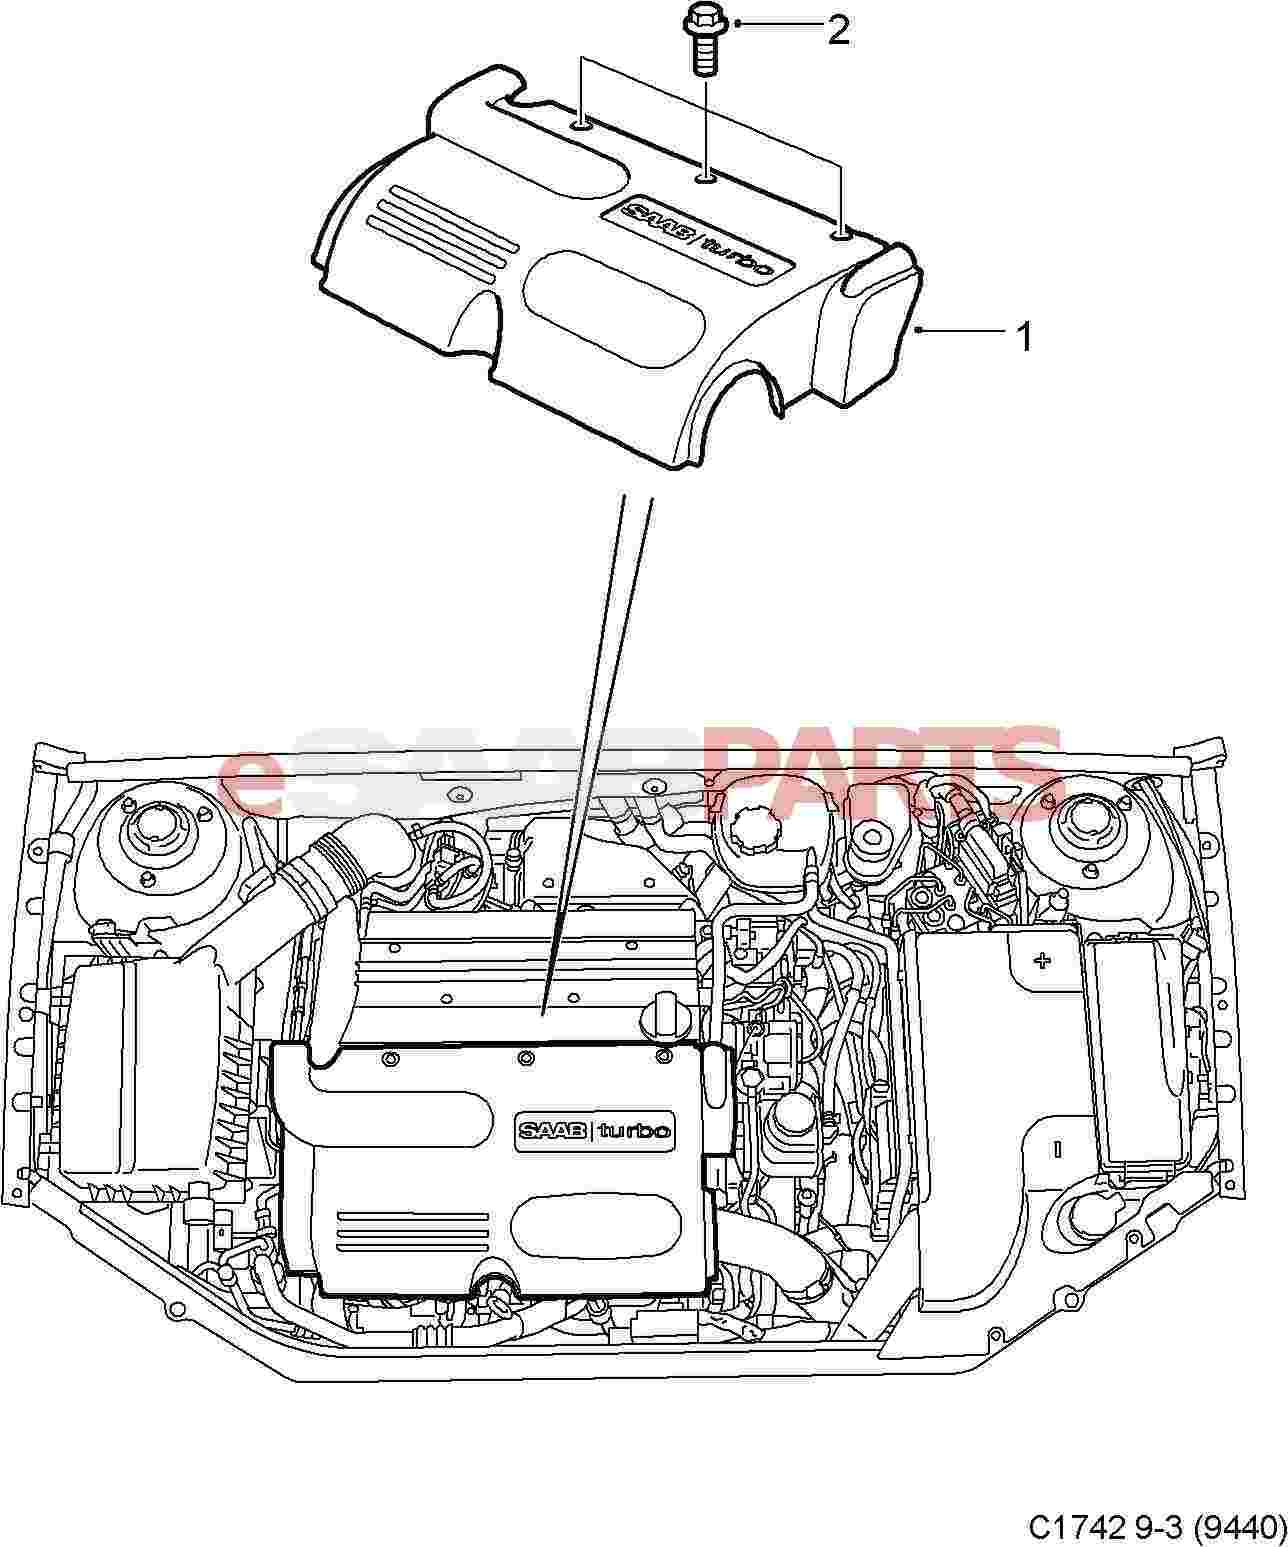 [DIAGRAM] 2006 Saab 9 3 Engine Diagram FULL Version HD